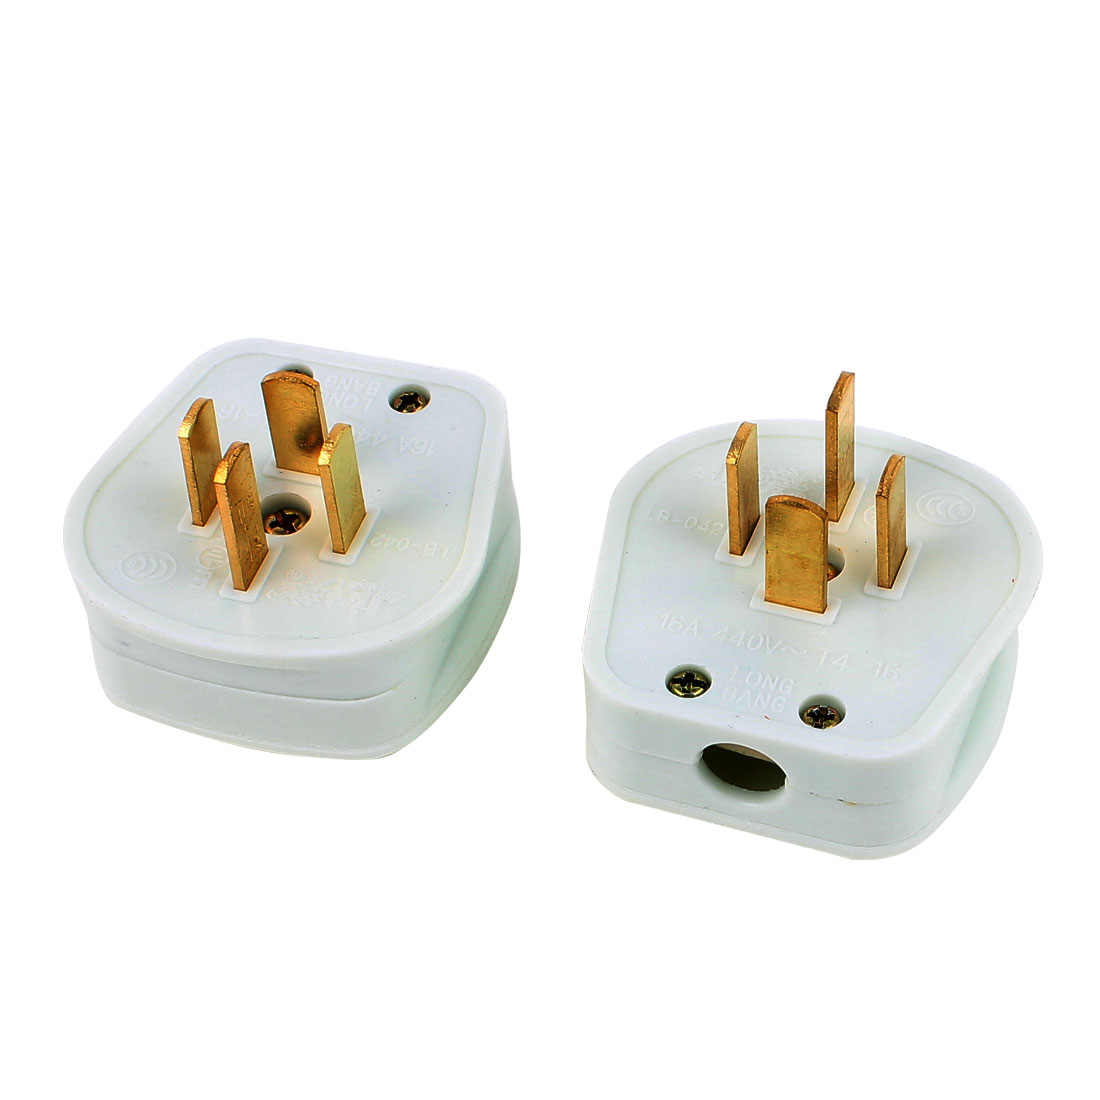 AC 440V 16A Industrial Plug 4 Flat Pin 3 Phase 4 Wire Power Adapter Plug